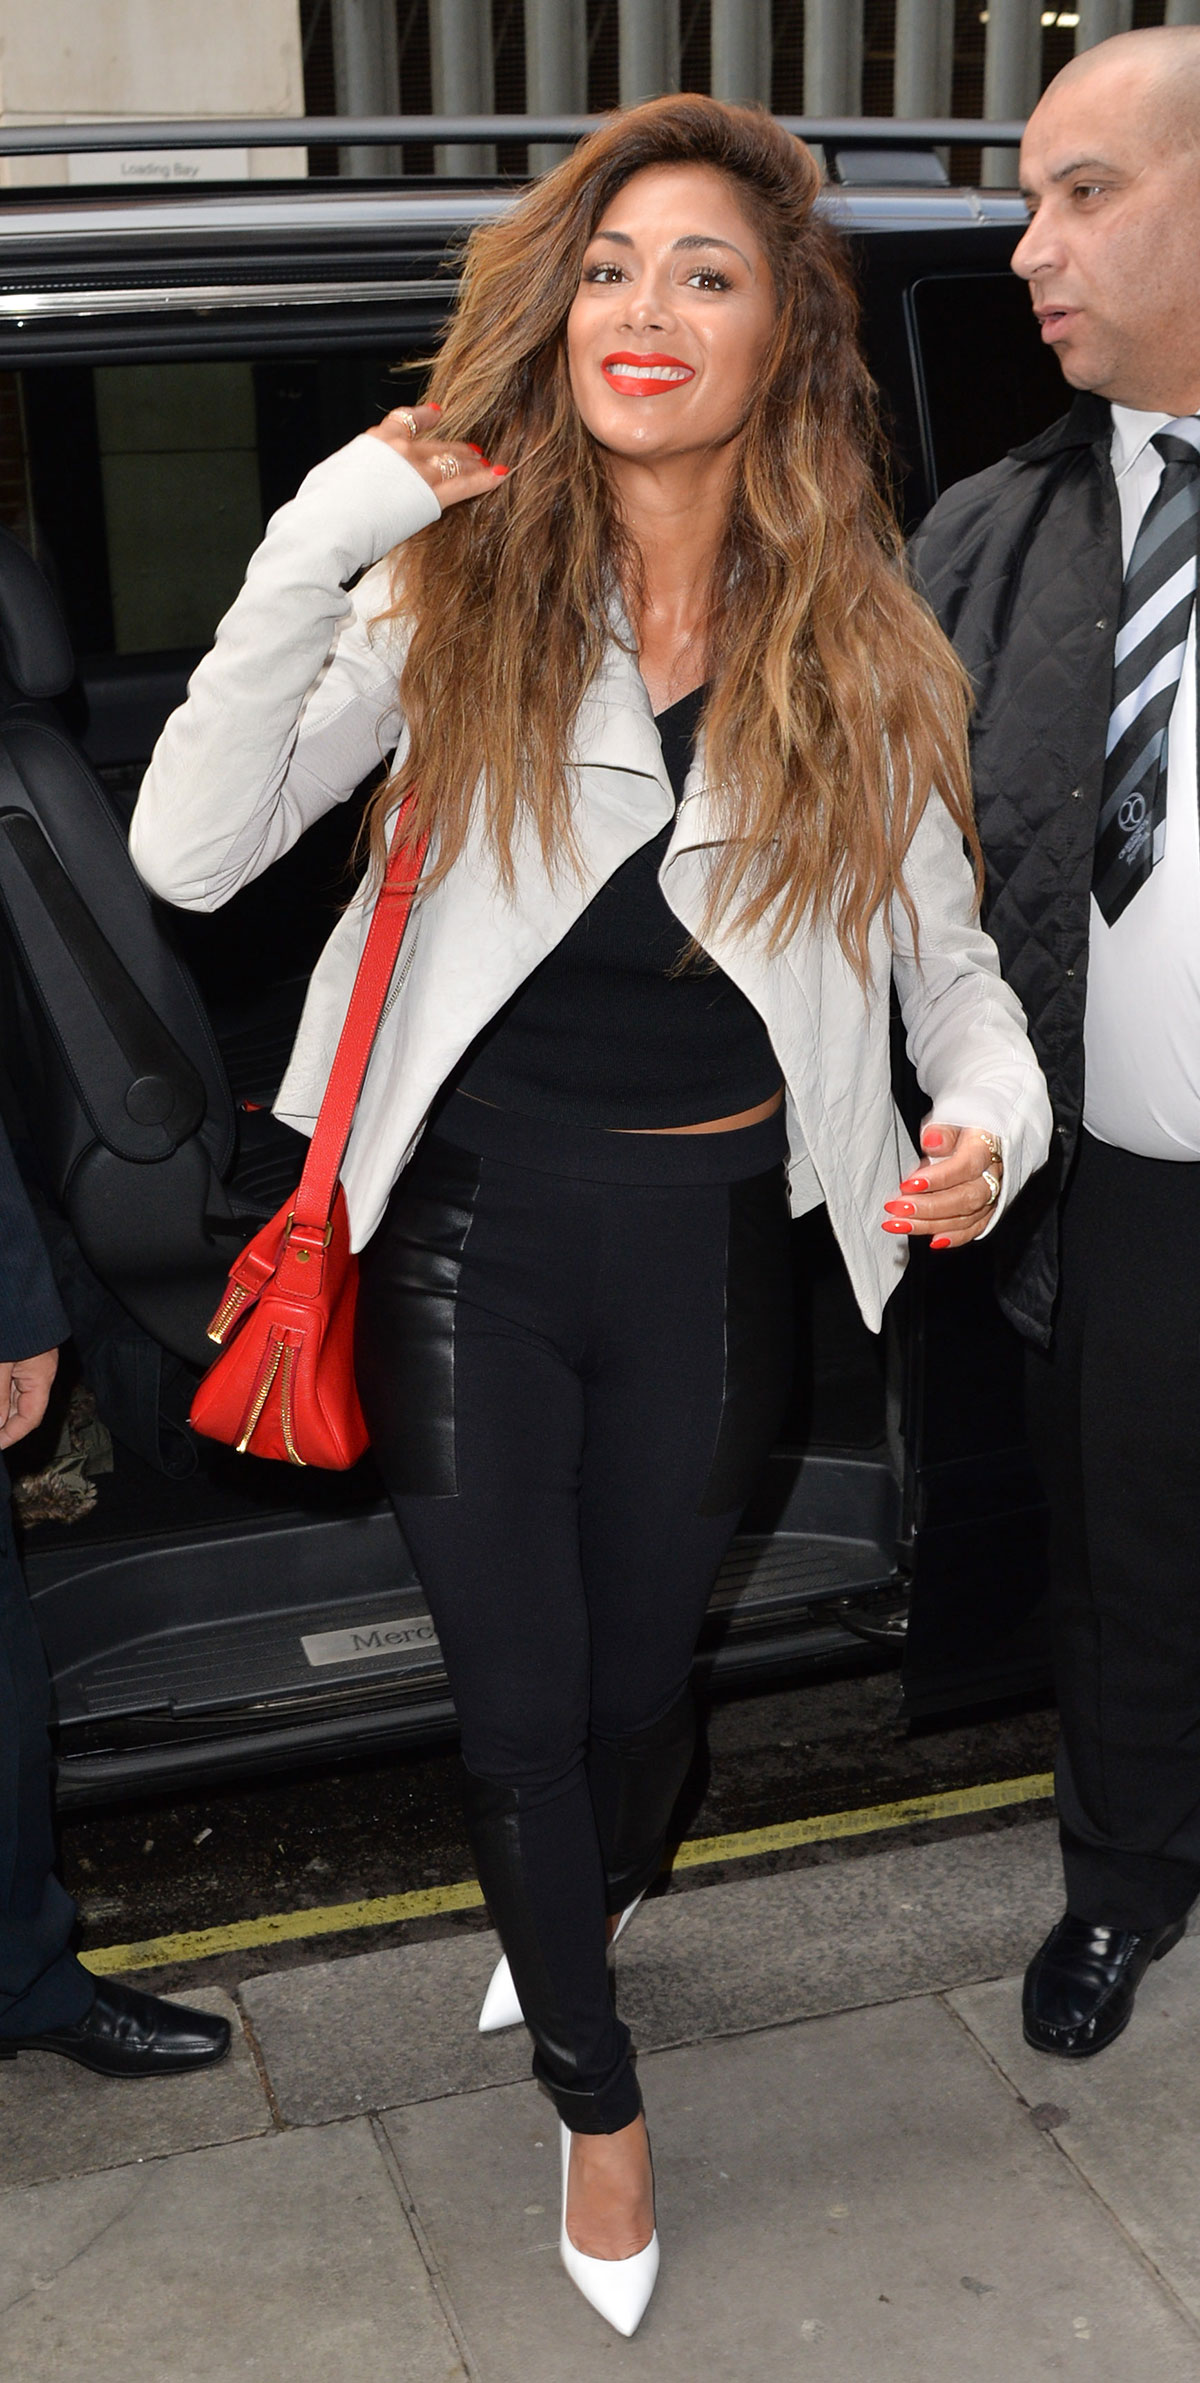 Nicole Scherzinger at KISS FM Radio Station